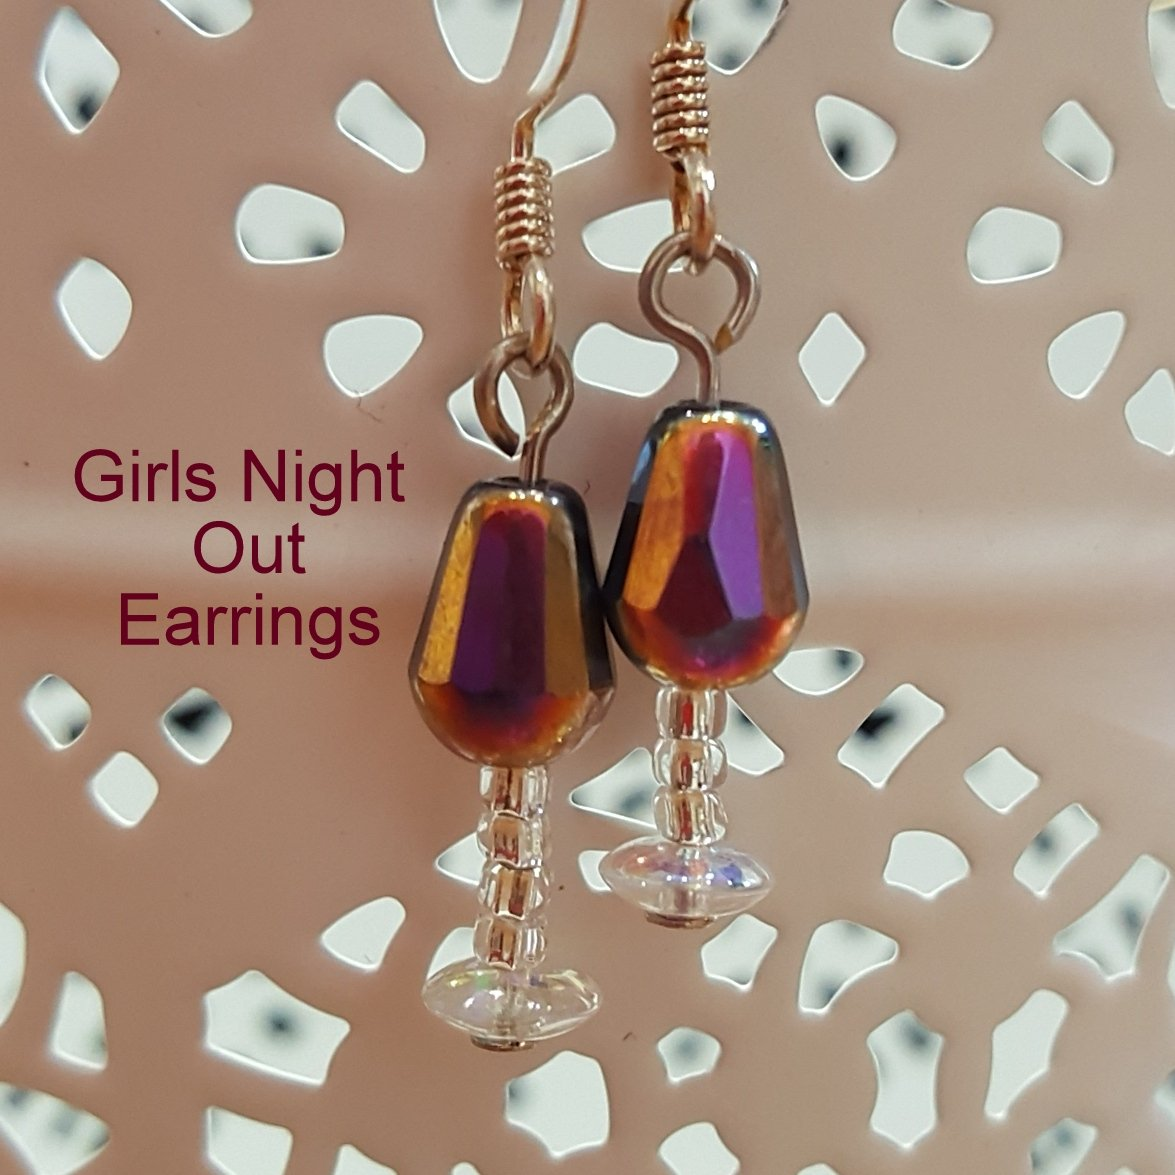 Girls Night Out Earrings Instruction